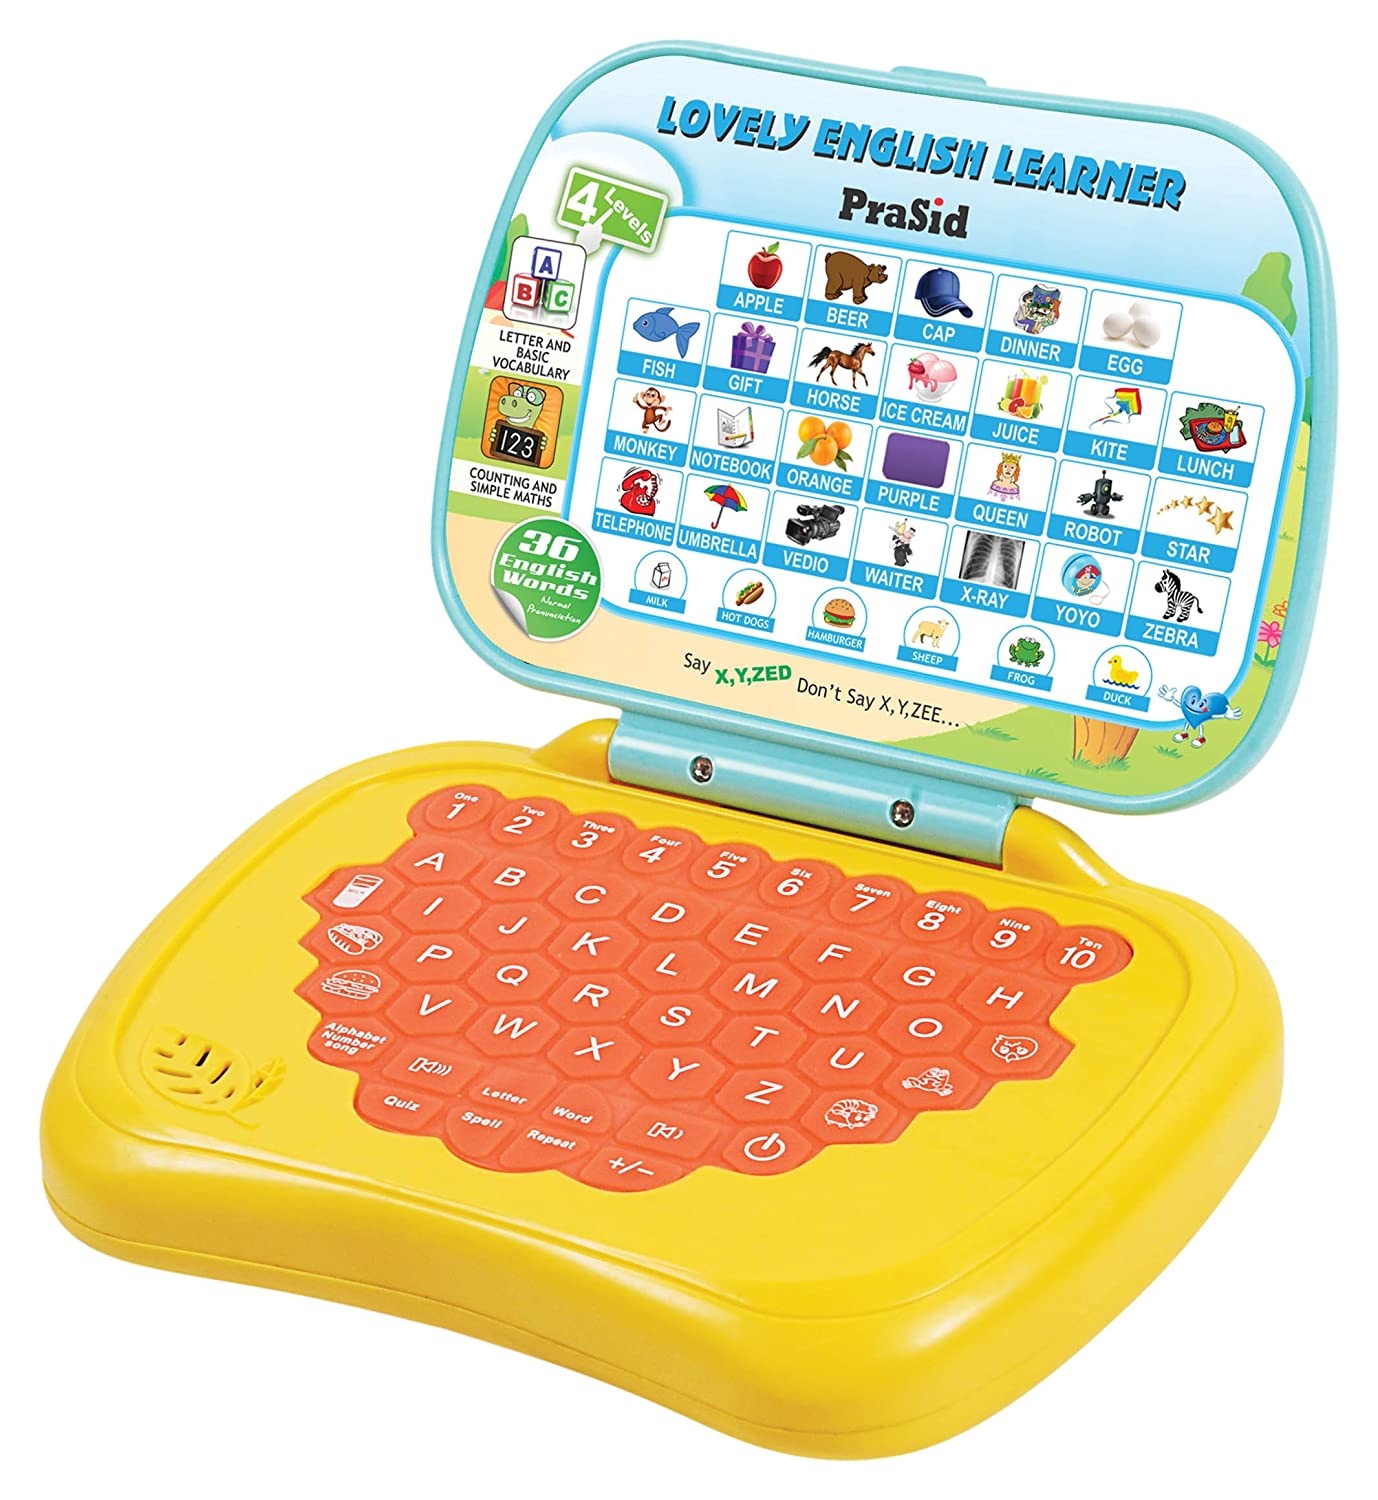 Buy Prasid Lovely English Learner Kids Laptop Lemon Orange line